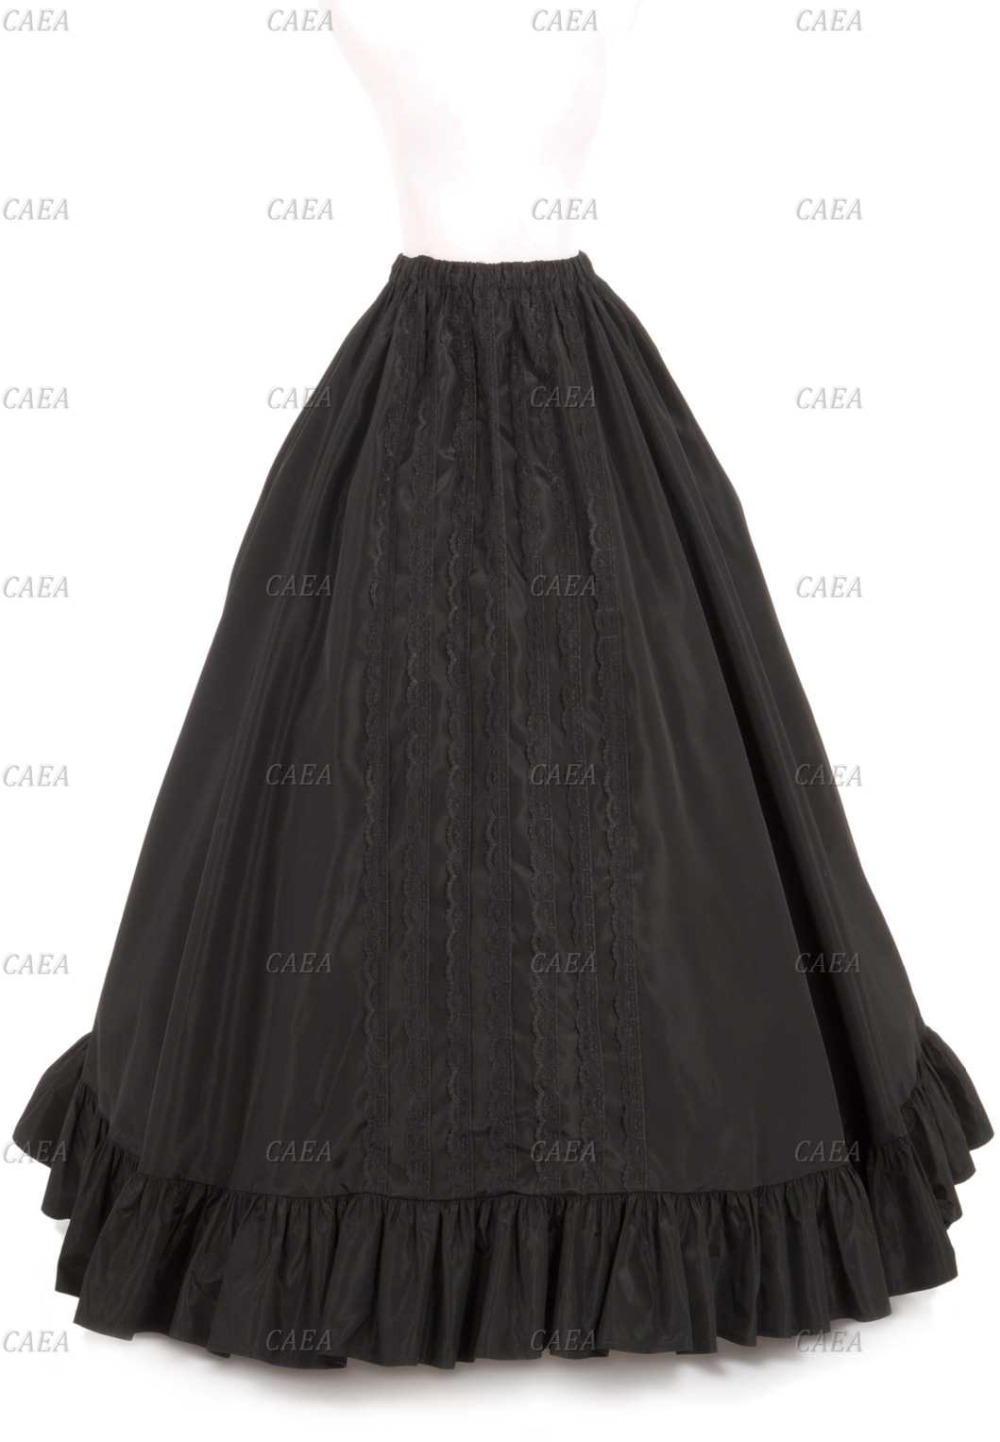 Ruffled Black Satin Vintage Styled Skirt Victorian Floor-Length Skirt Custom Make Plus Size